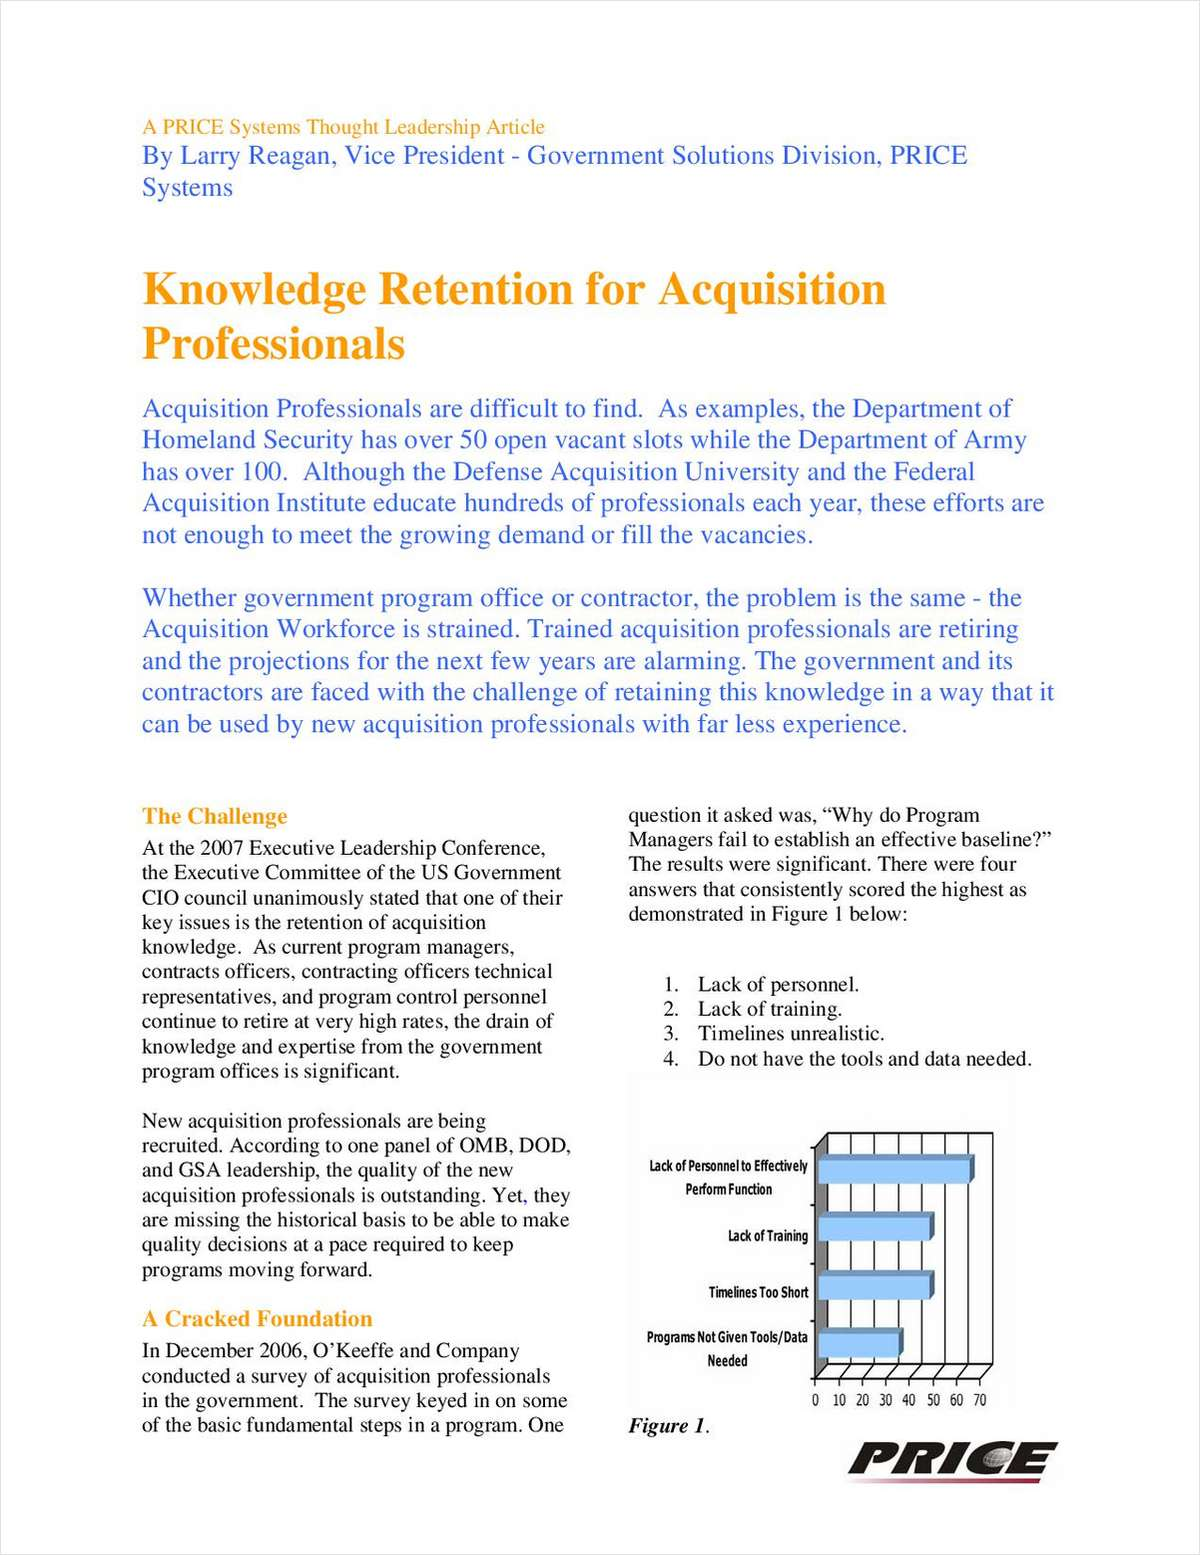 Knowledge Retention for Acquisition Professionals